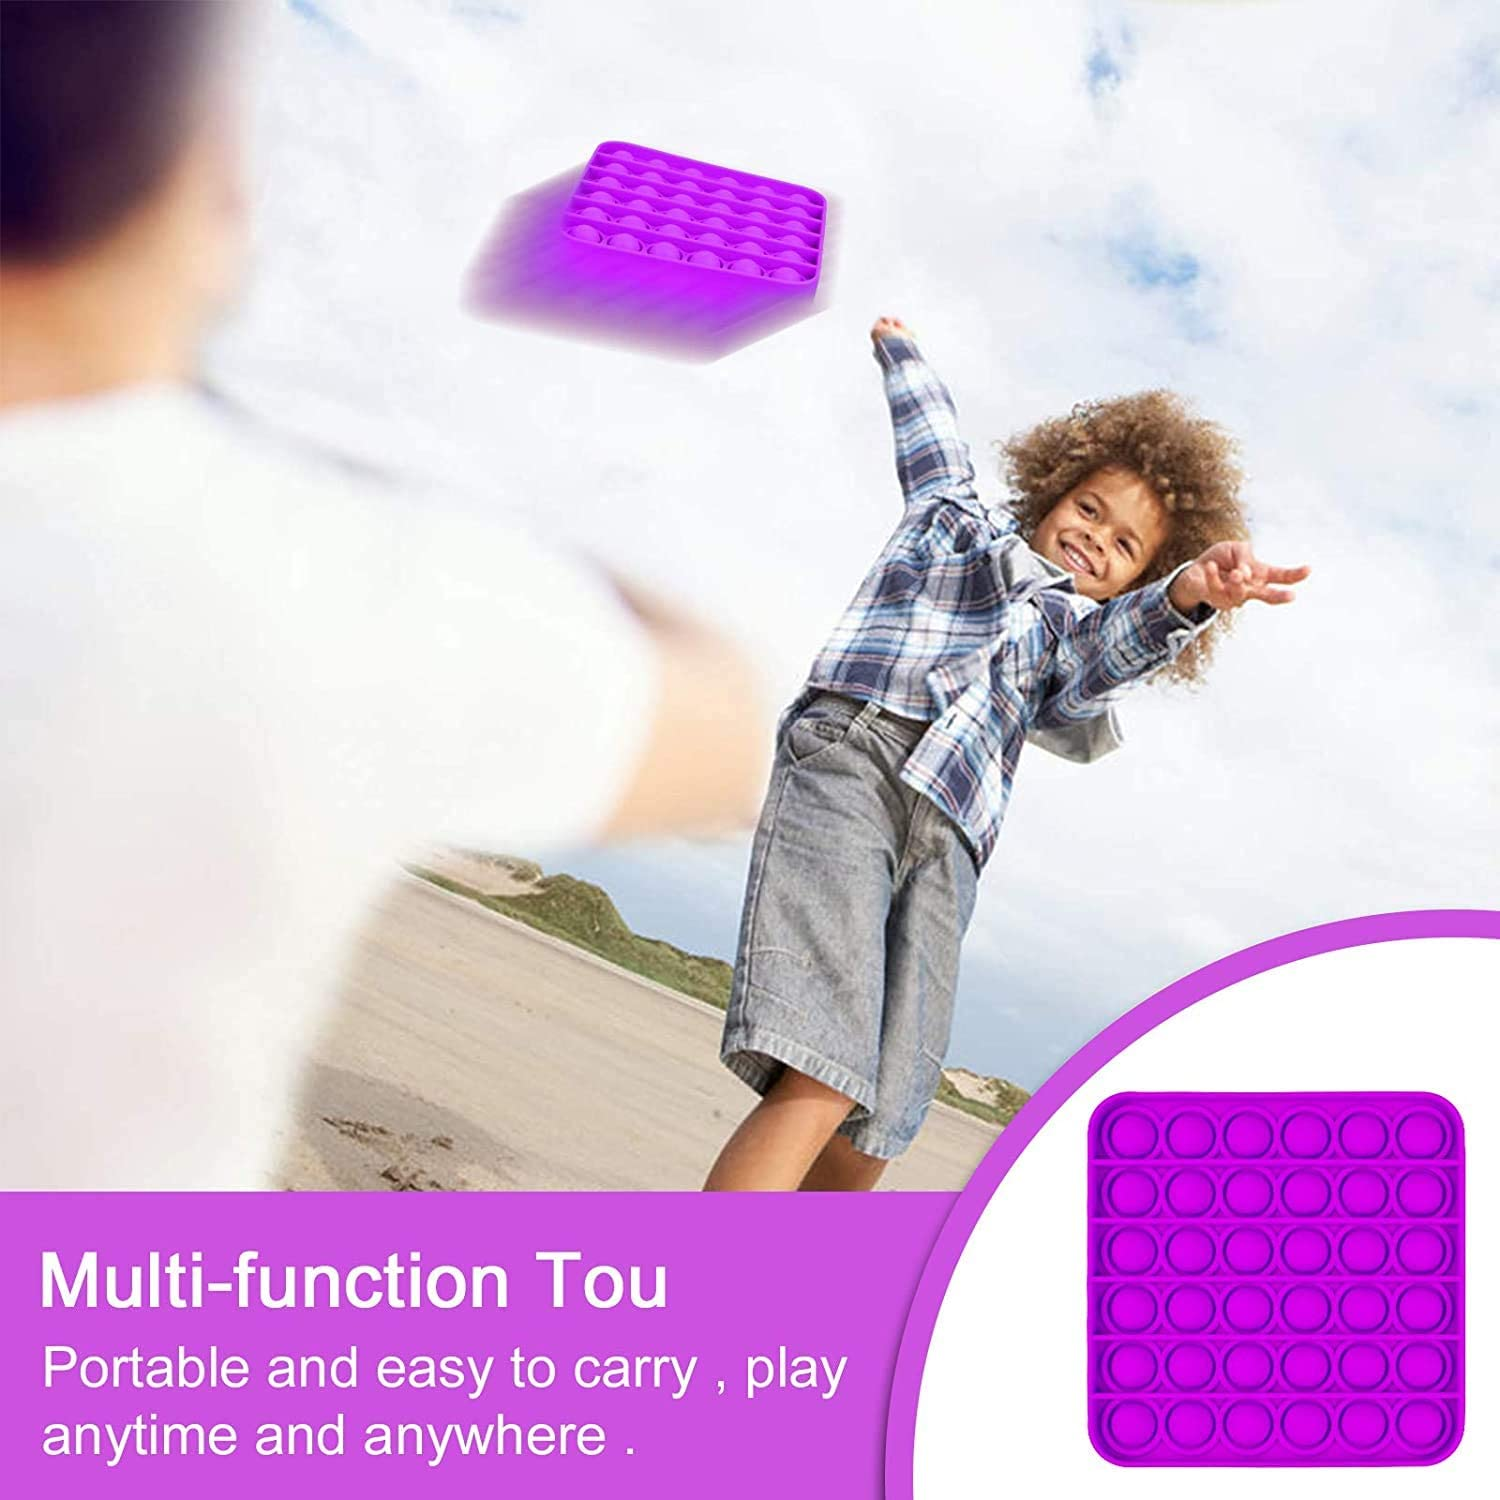 A HJHY Square Push Pop Bubble Fidget Sensory Toi Push Pops Fideget for Kids and Family Push Pops for Stress and Anxiety Relief